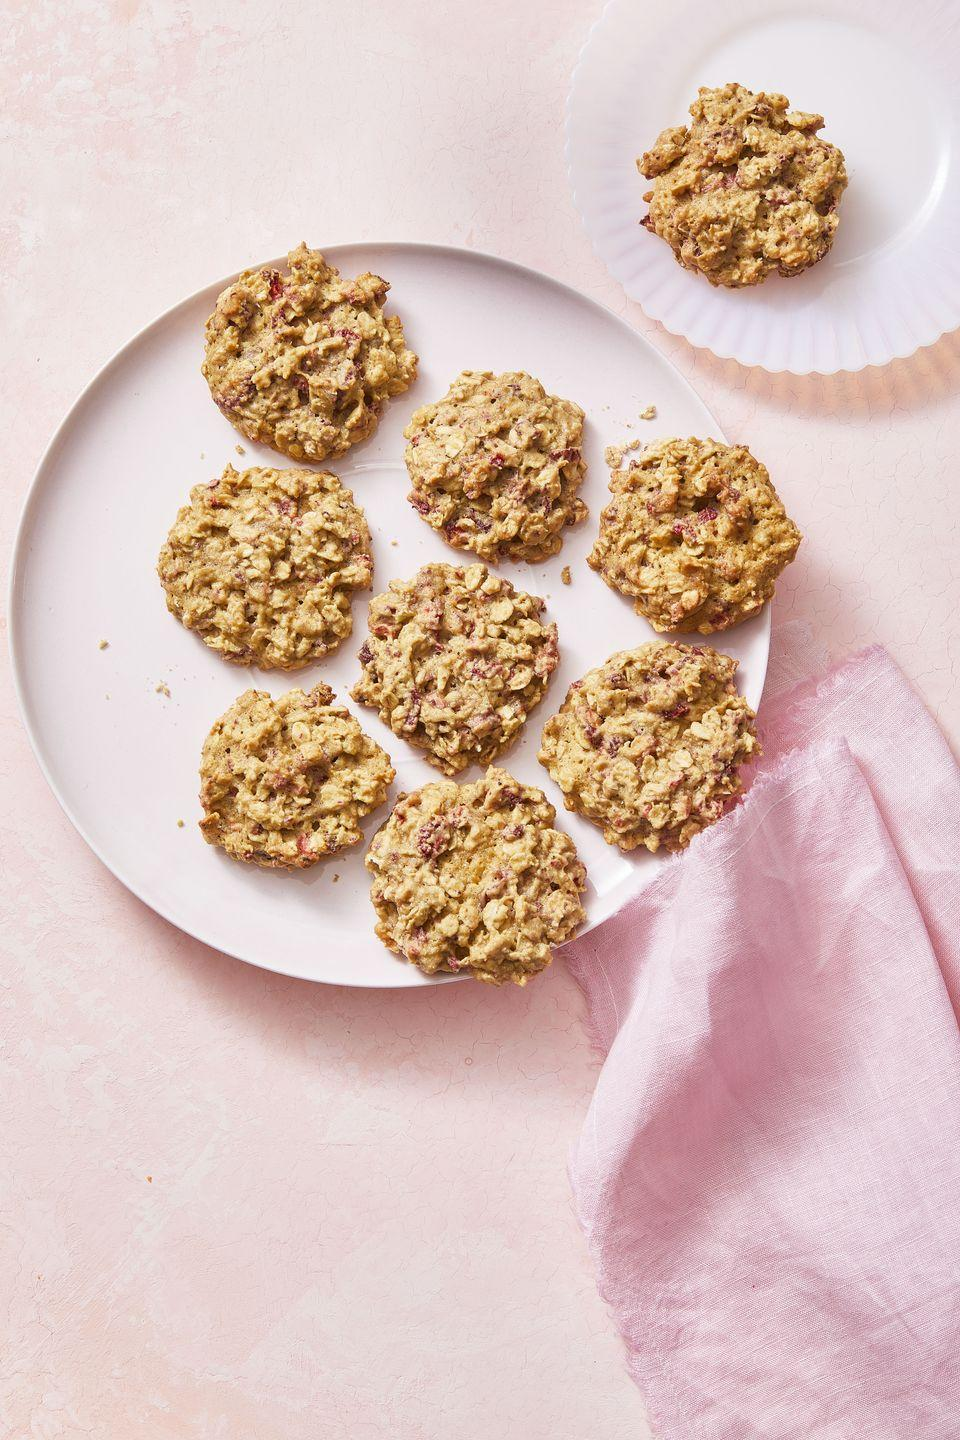 """<p>Upgrade your oatmeal cookies with some sweet strawberries.</p><p><em><a href=""""https://www.womansday.com/food-recipes/a30416854/strawberry-oatmeal-cookies-recipe/"""" rel=""""nofollow noopener"""" target=""""_blank"""" data-ylk=""""slk:Get the recipe for Strawberry Oatmeal Cookies."""" class=""""link rapid-noclick-resp"""">Get the recipe for Strawberry Oatmeal Cookies.</a></em></p>"""